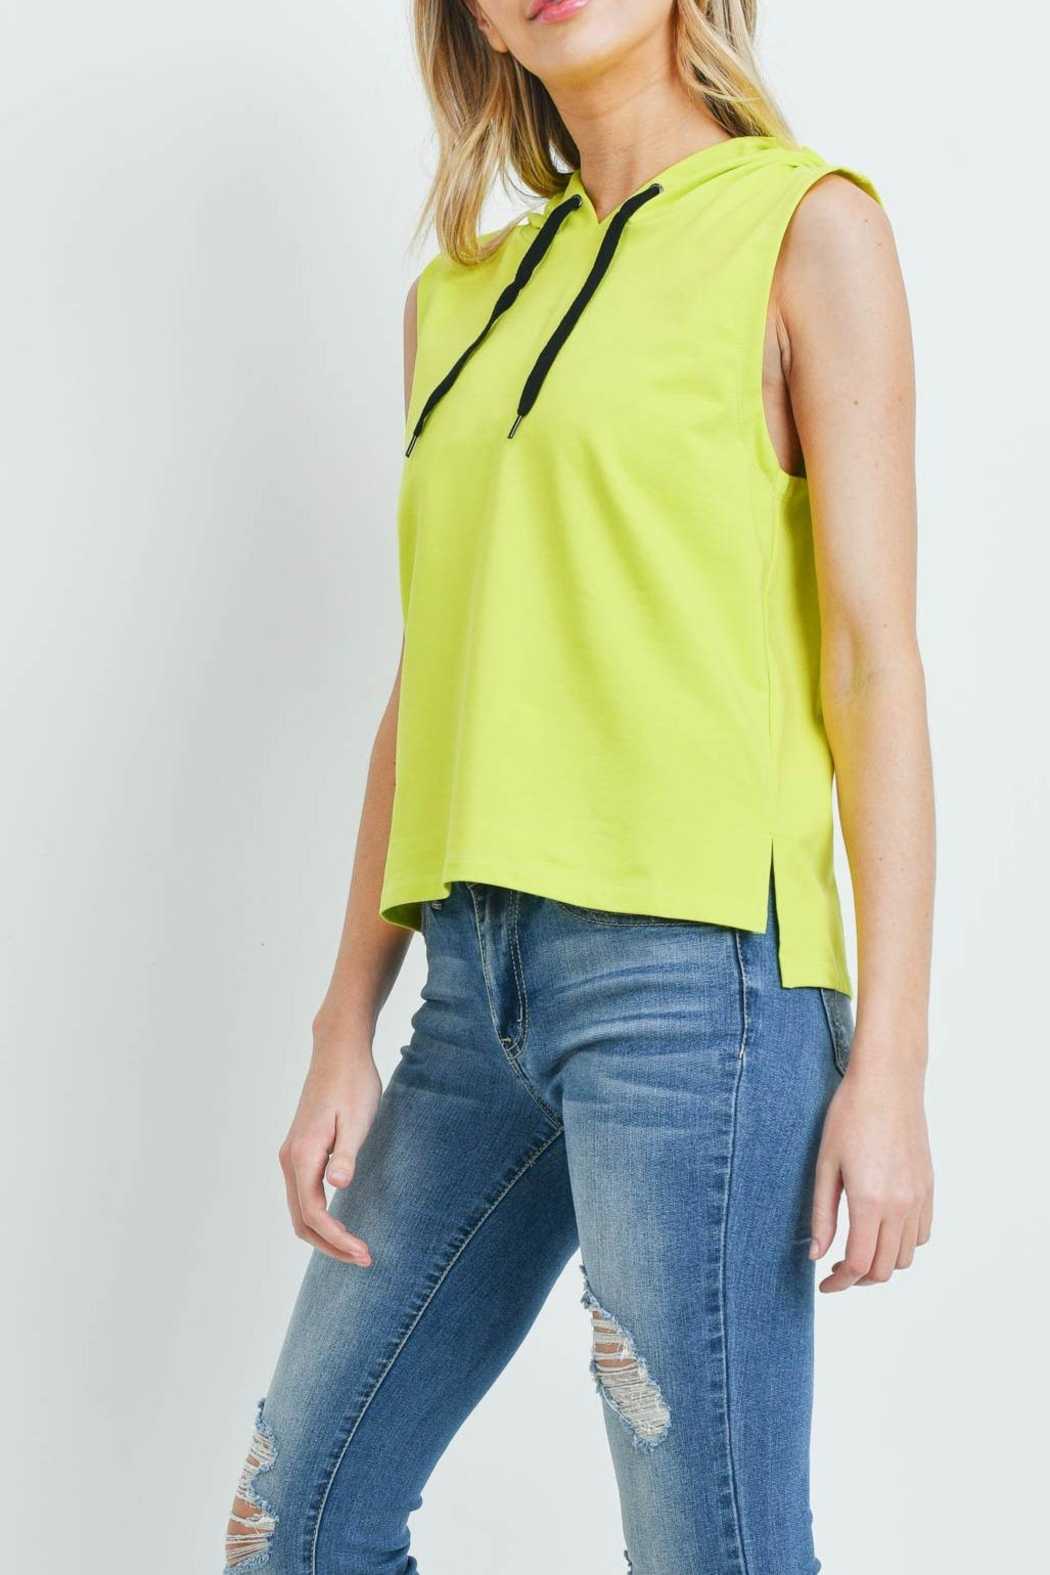 Riah Fashion Yellow-Lime-Top - Front Cropped Image